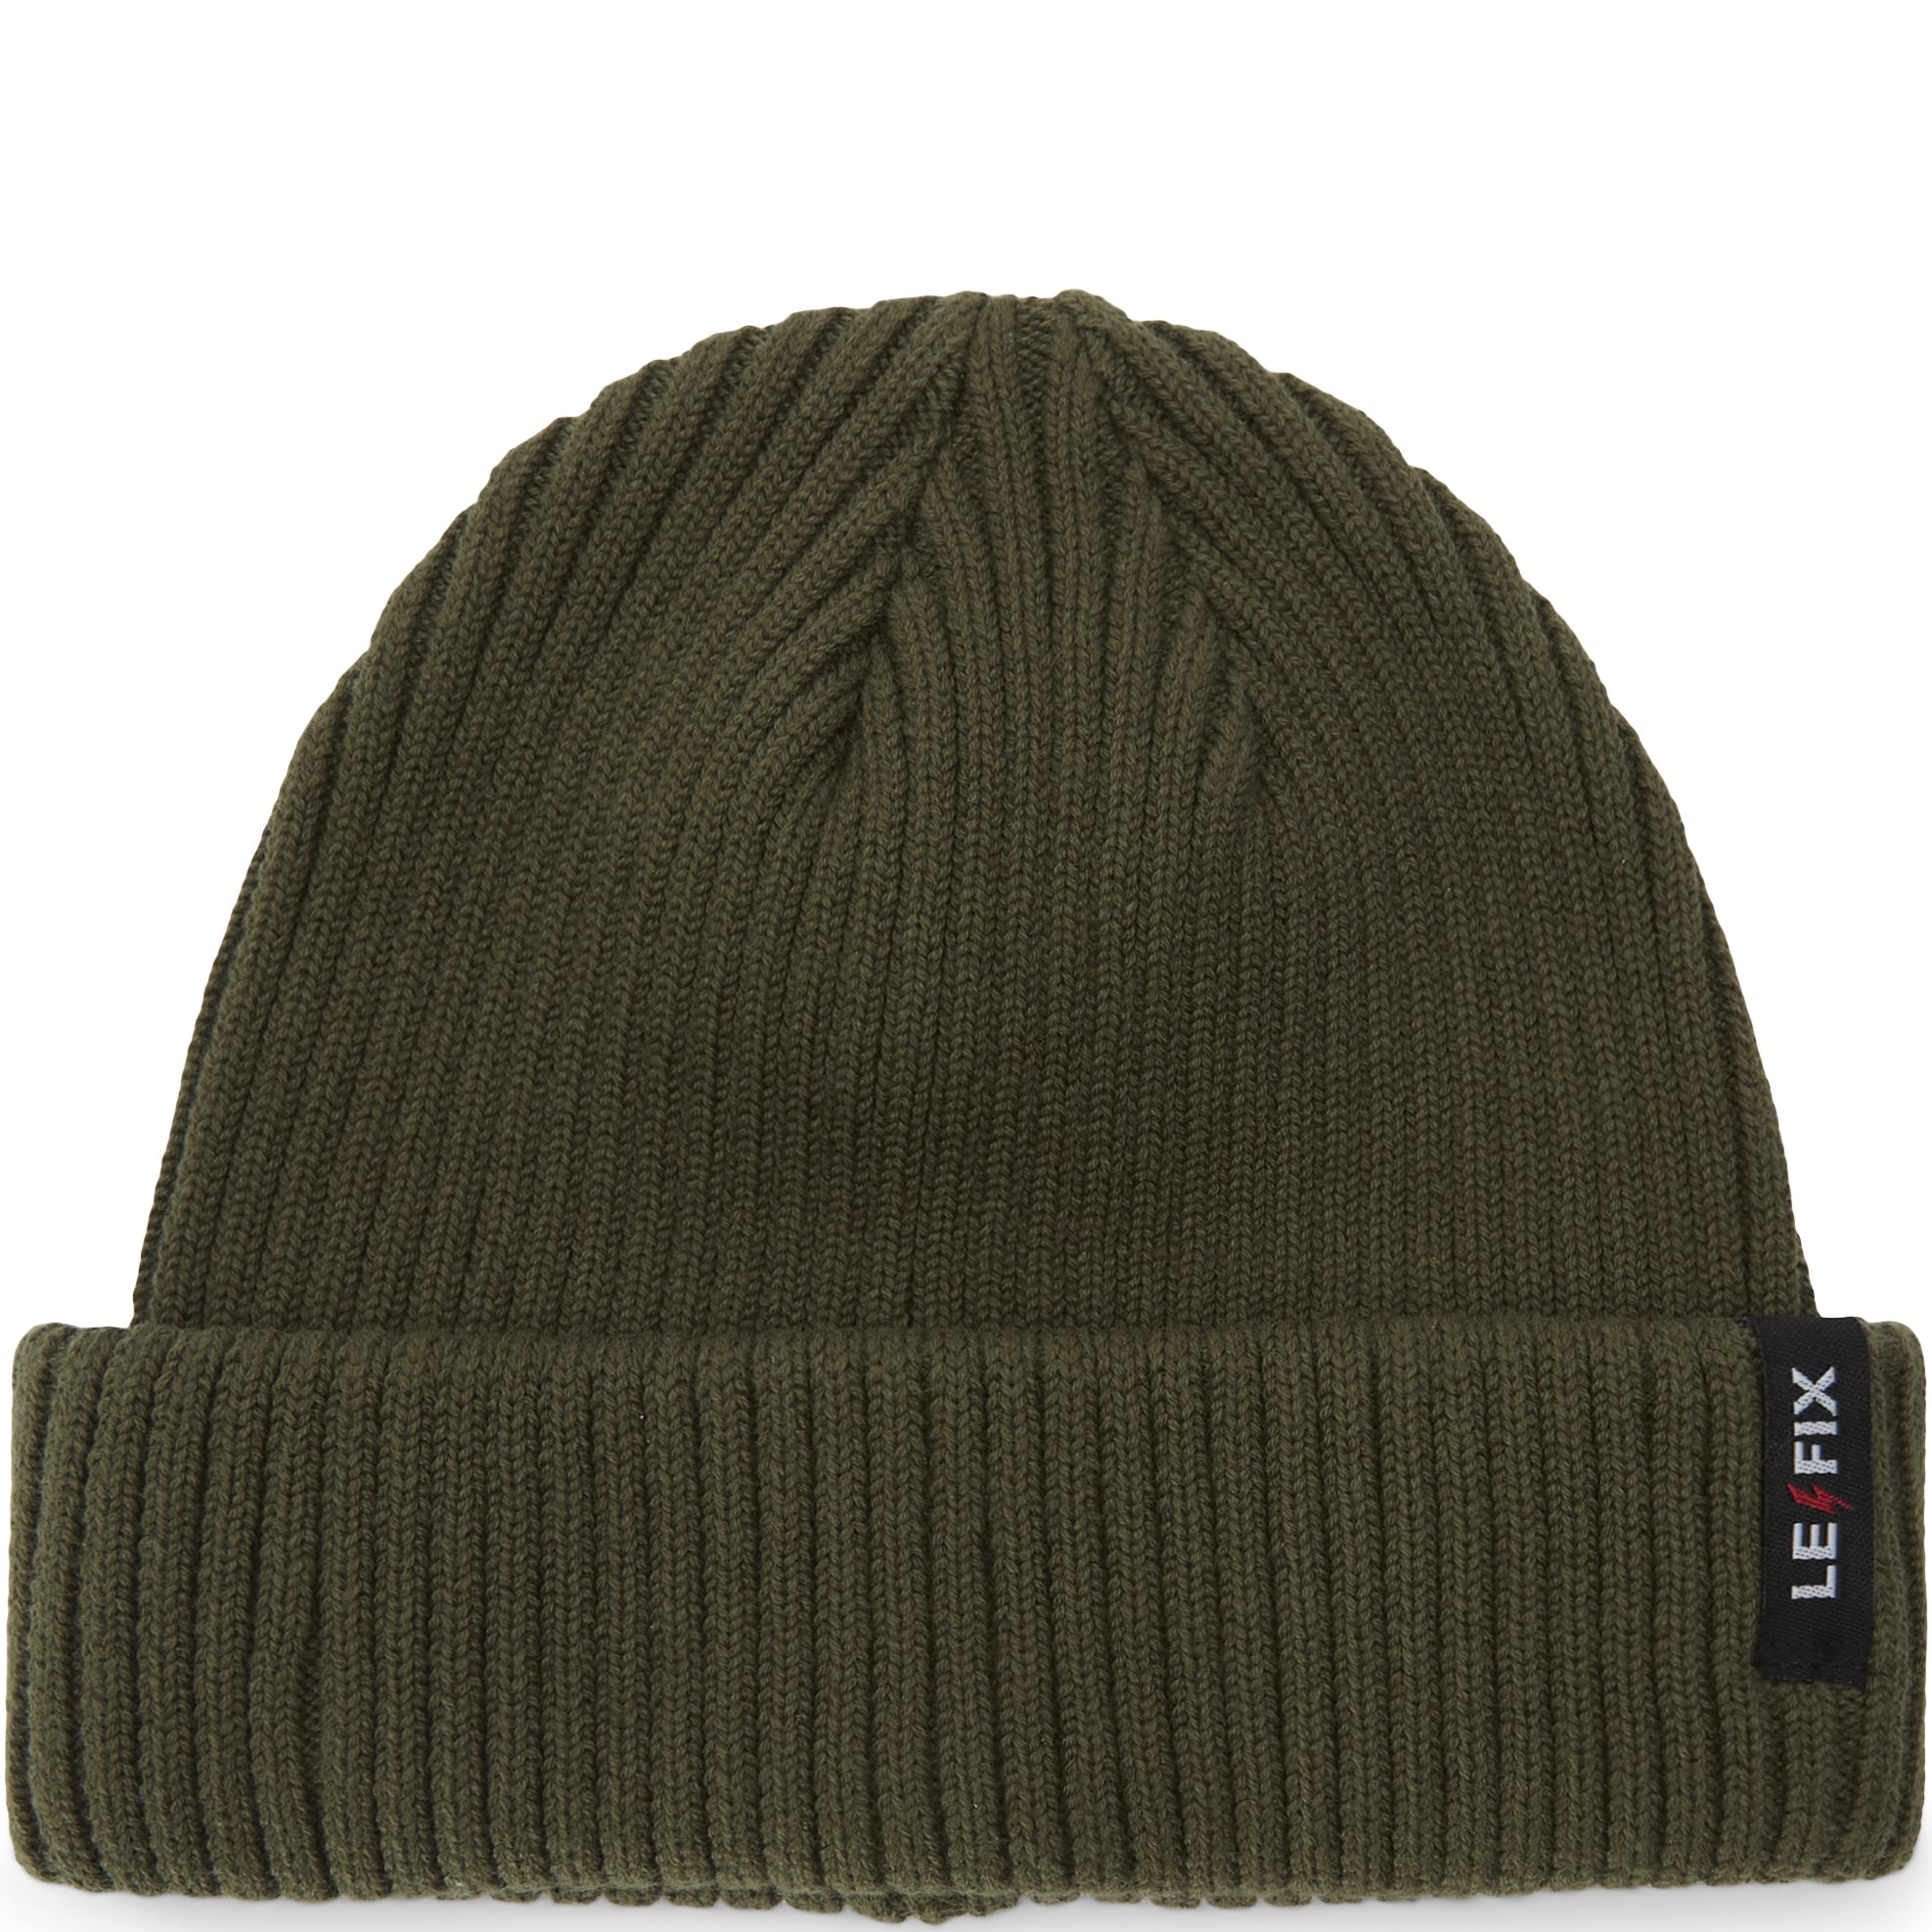 Cotton Sailor Beanie - Huer - Army